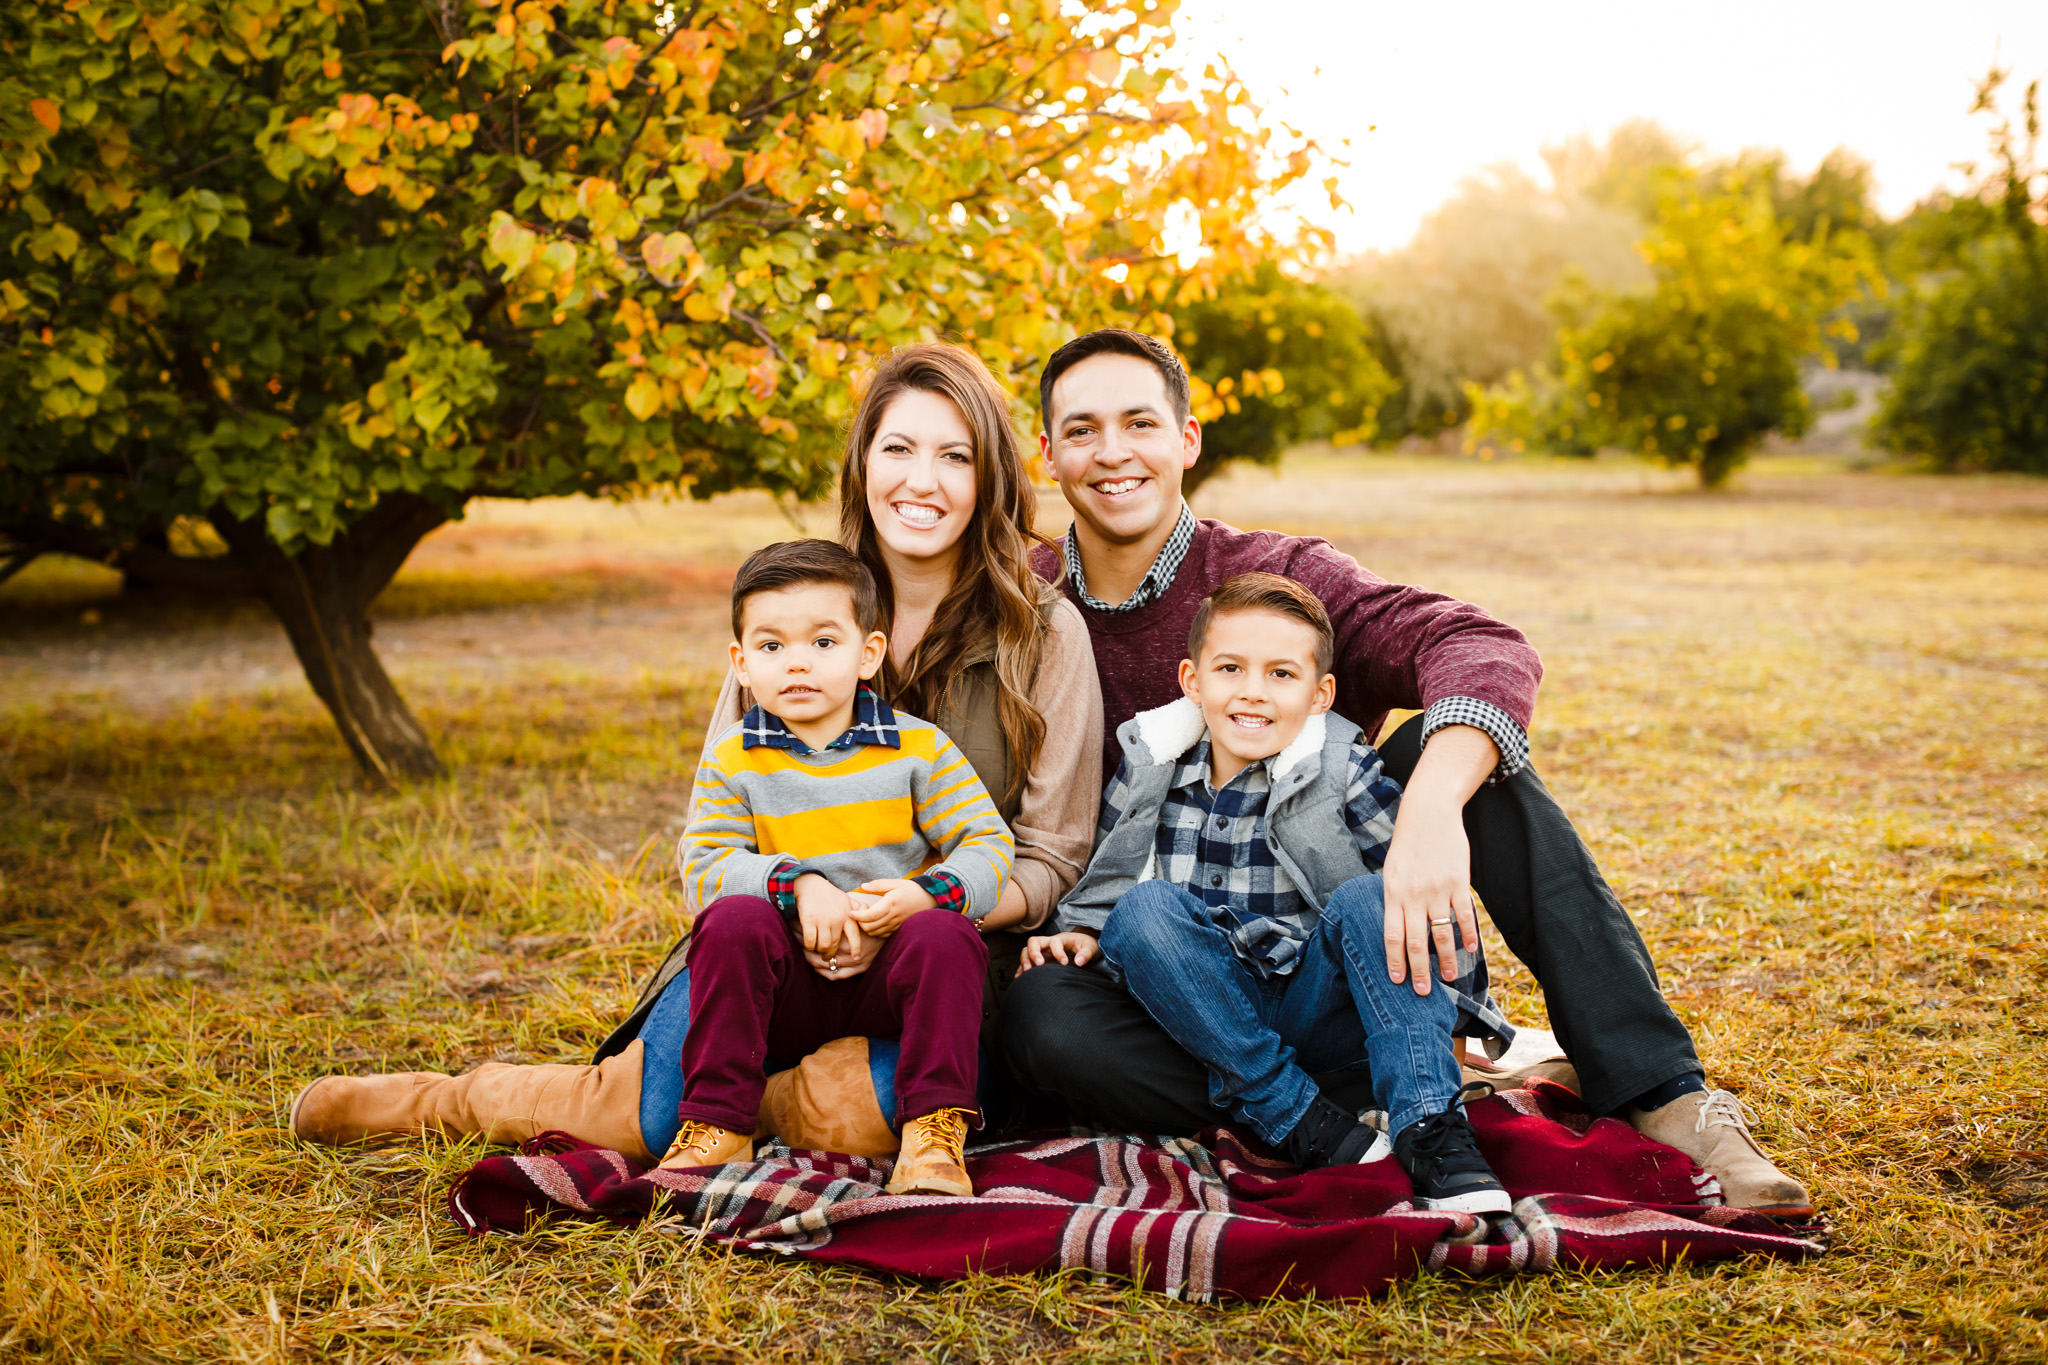 Abridged Session $300 - 15-20 minutes / location and time determined by Julie / always back-to-back with another family / sessions move quickly / not recommended for families of 6+ / one household // approx. 30-50 images / $100 retainer